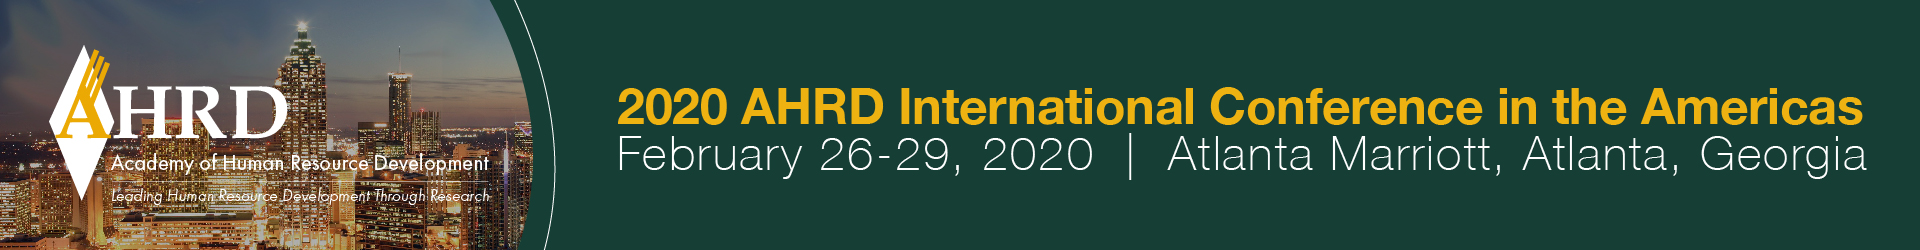 2020 AHRD Conference in the Americas Event Banner